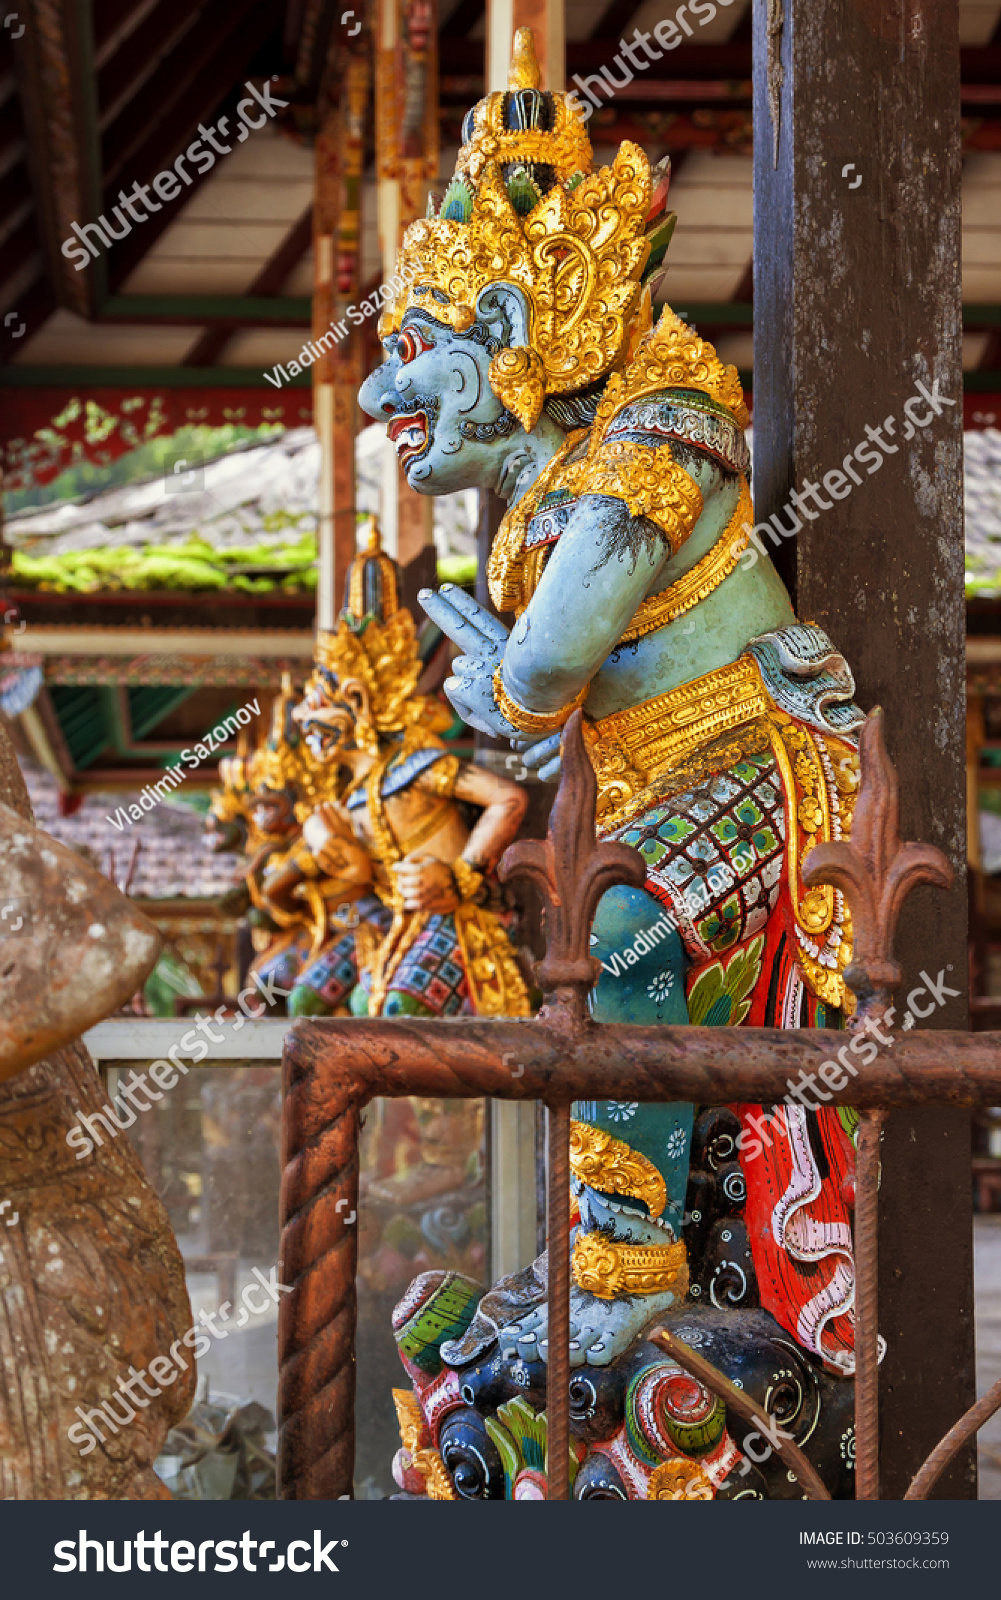 hindu culture in indonesia